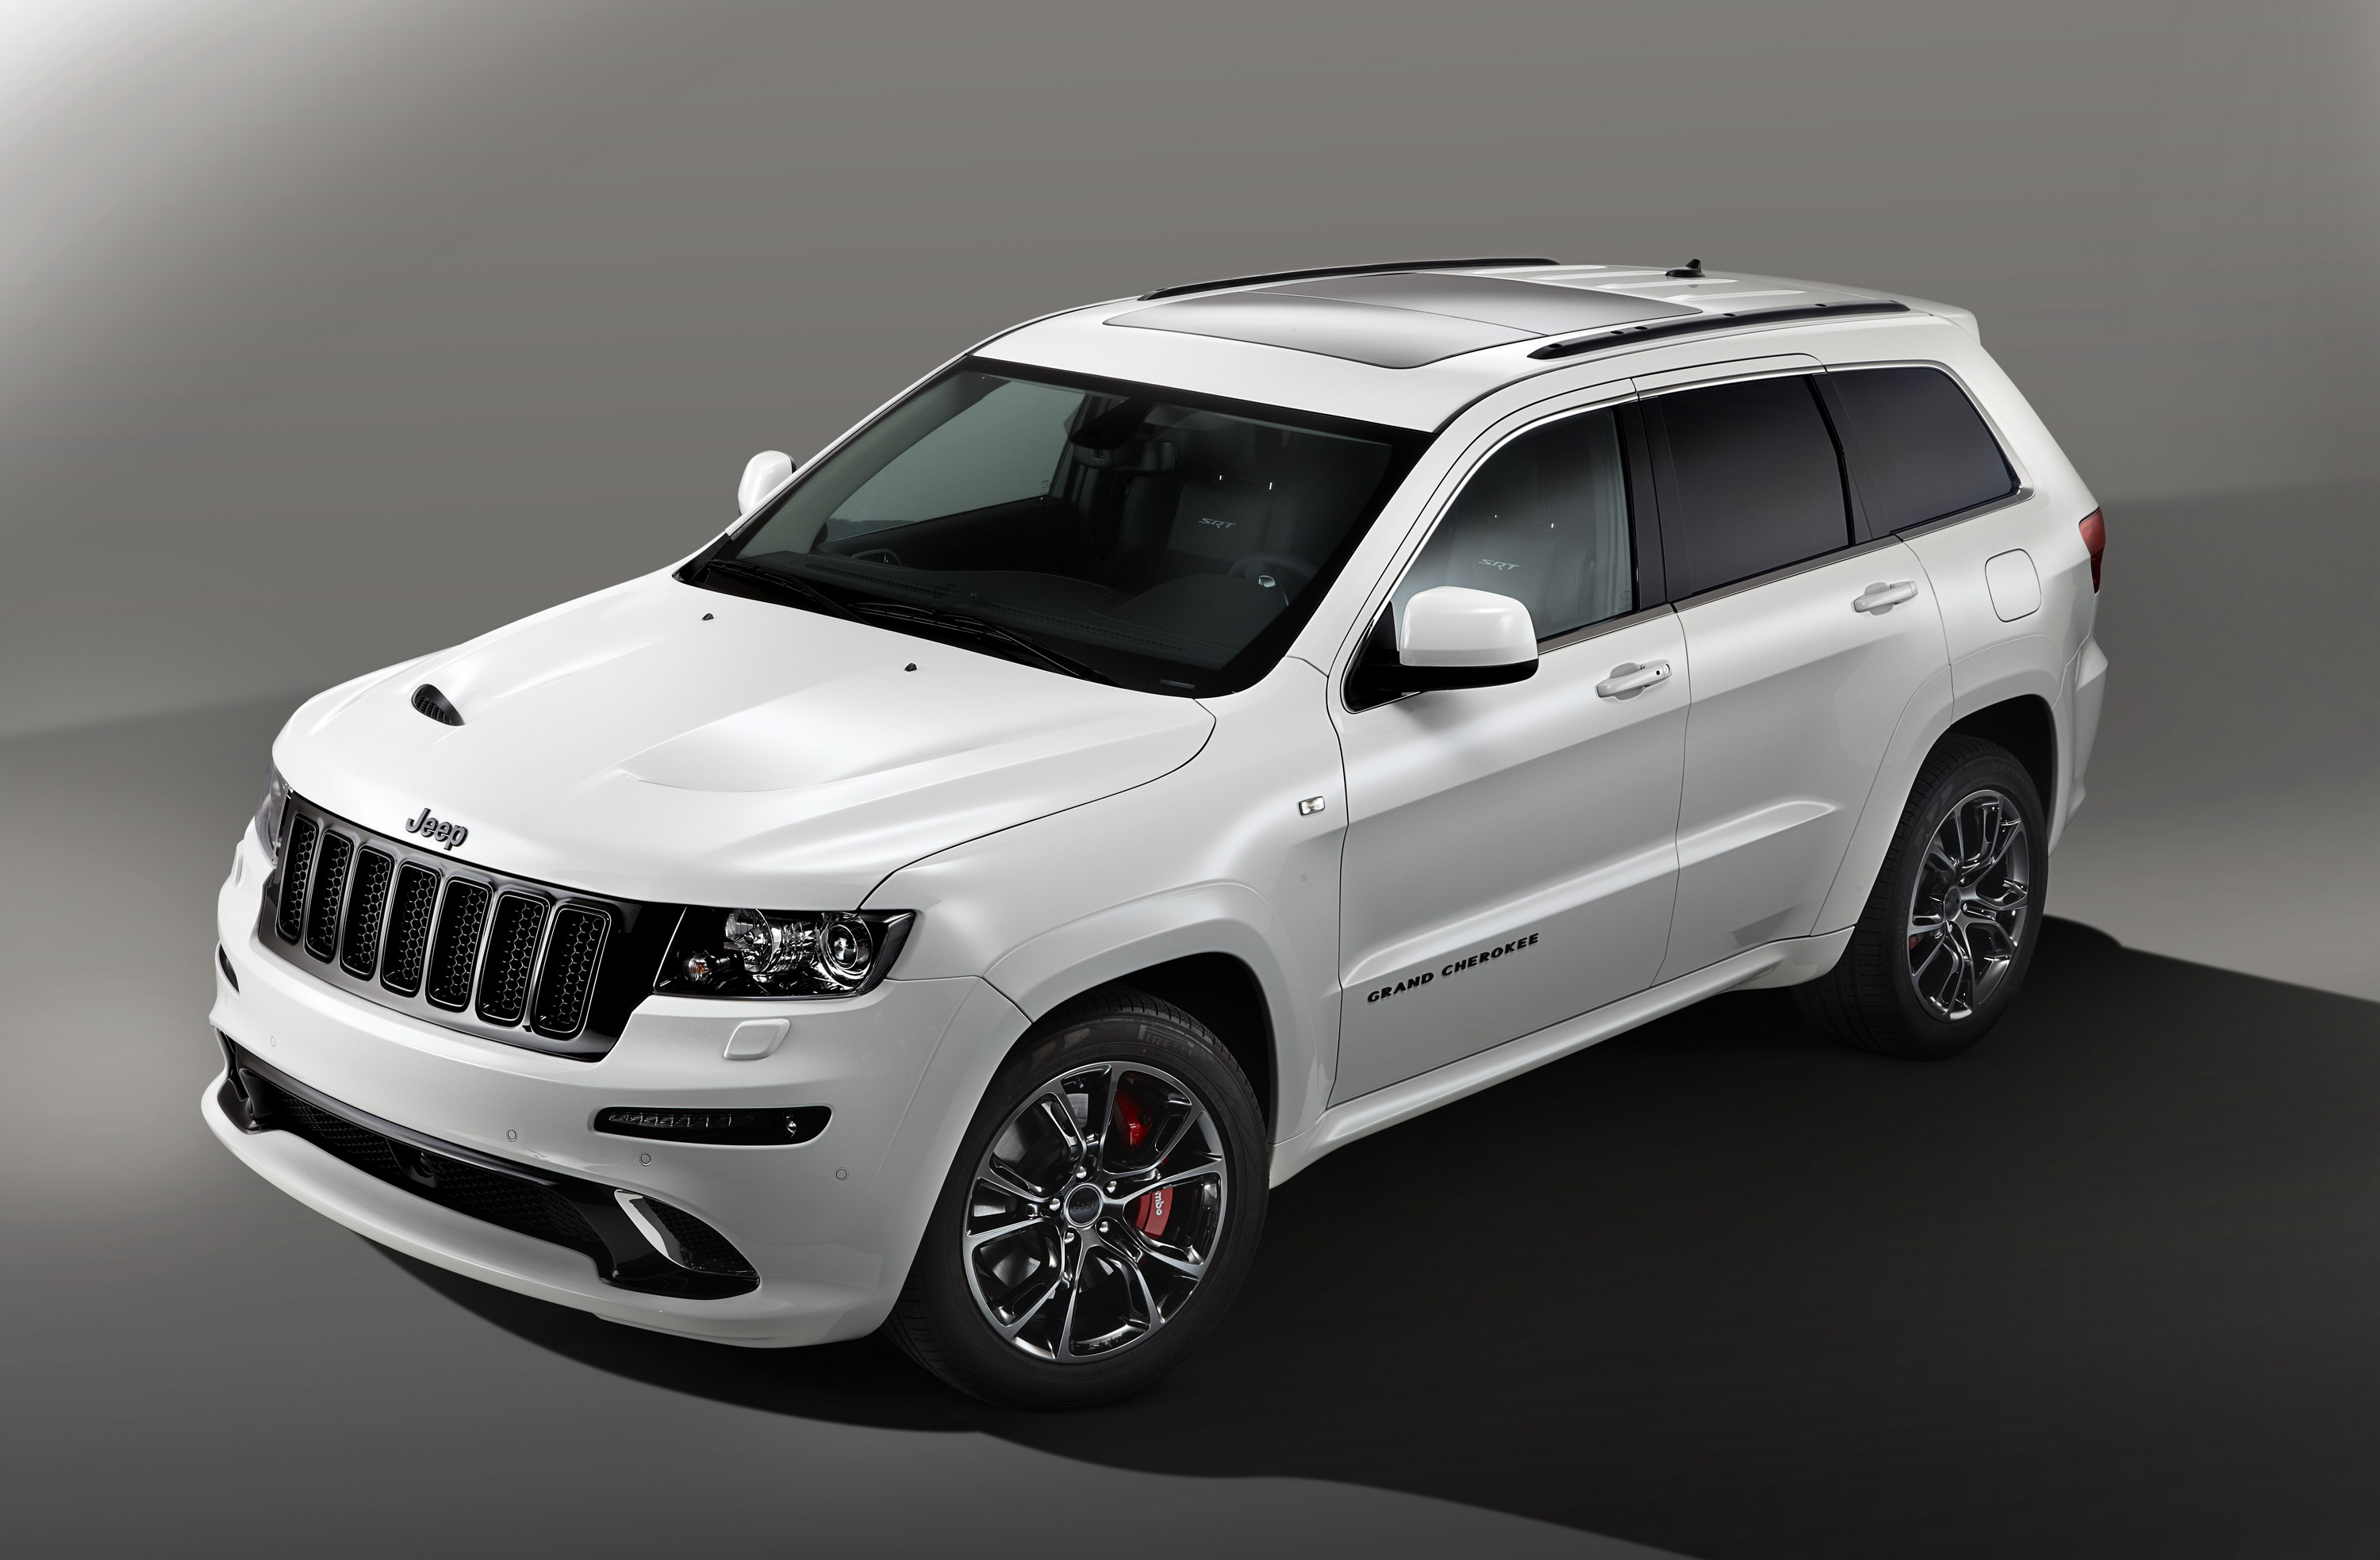 2012 jeep grand cherokee srt limited edition top speed. Black Bedroom Furniture Sets. Home Design Ideas